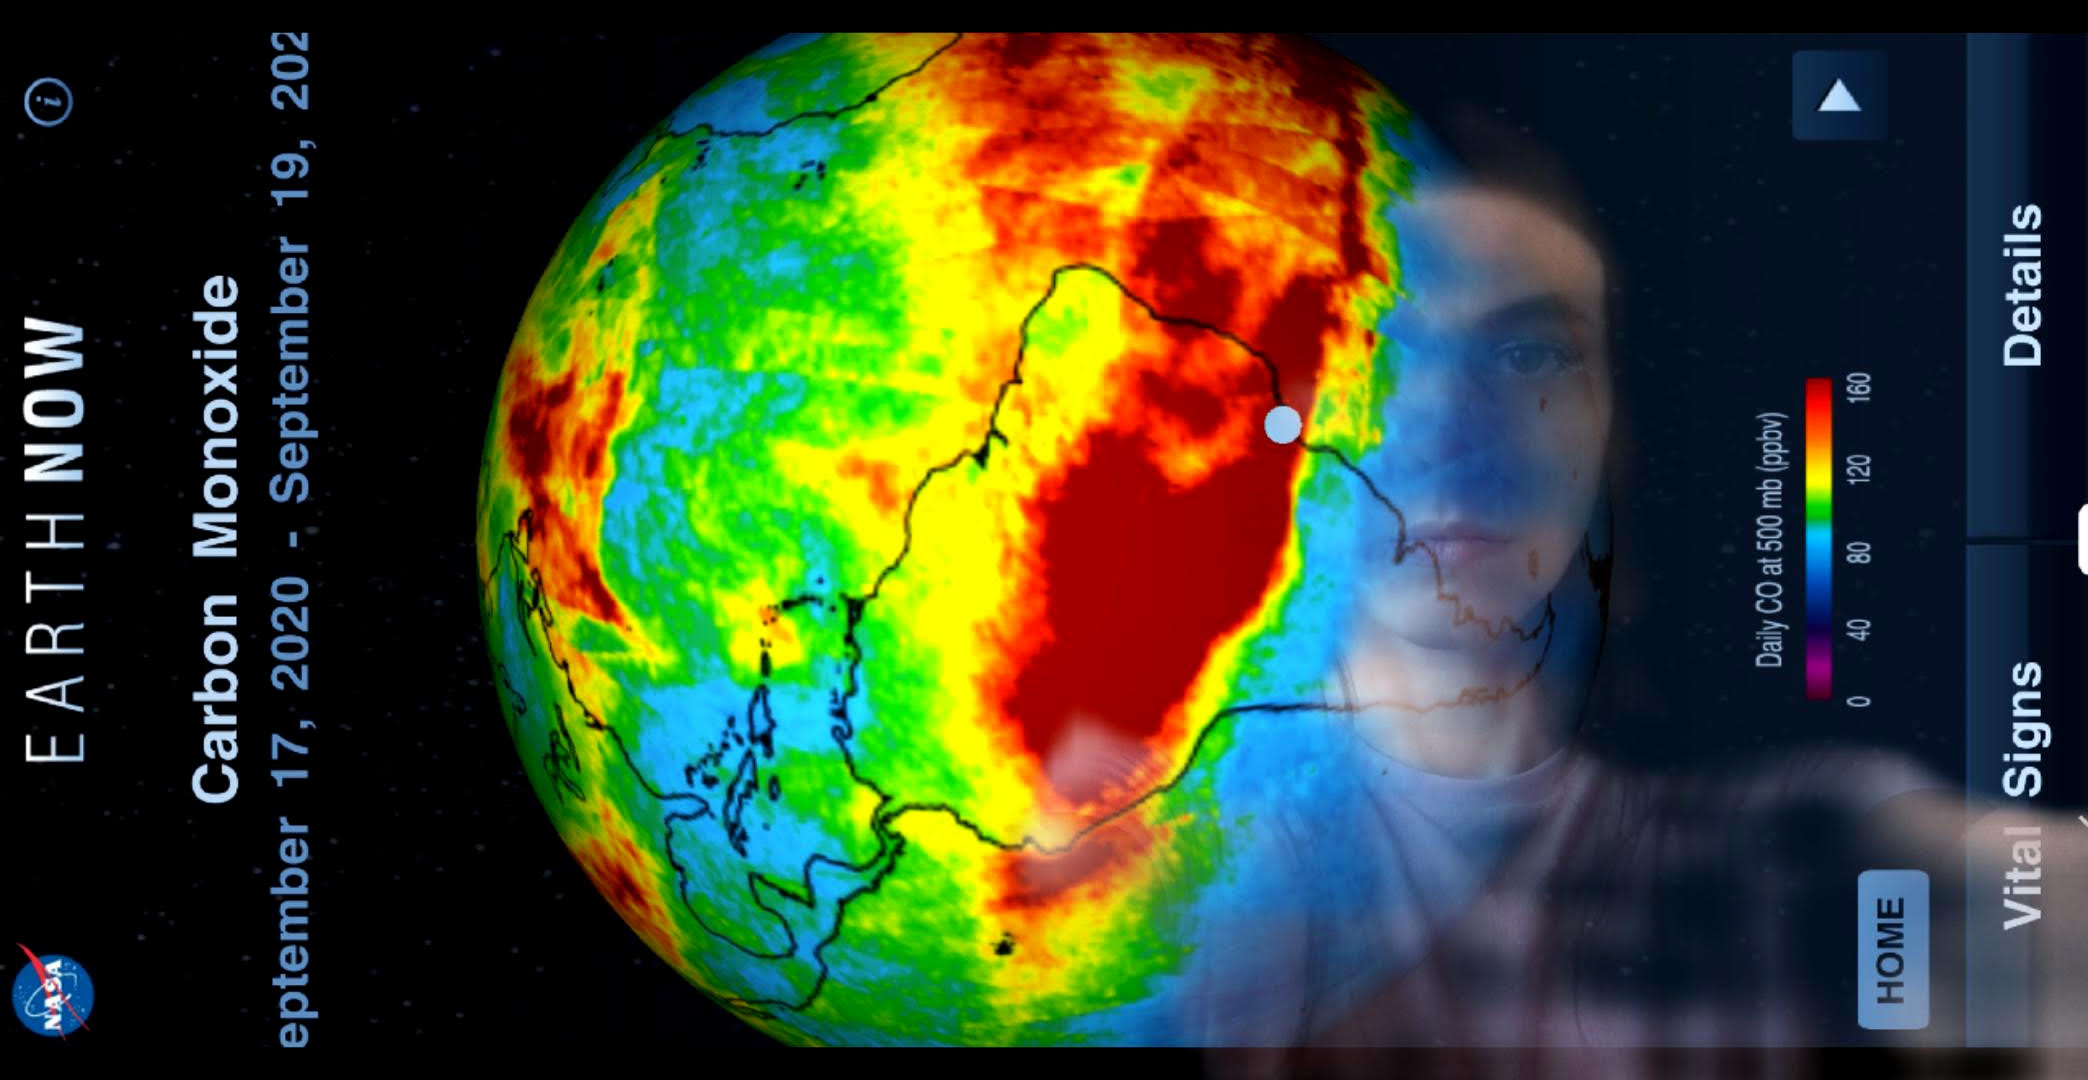 the image of a phone screen with a thermal map of the world superimposed over a person's face